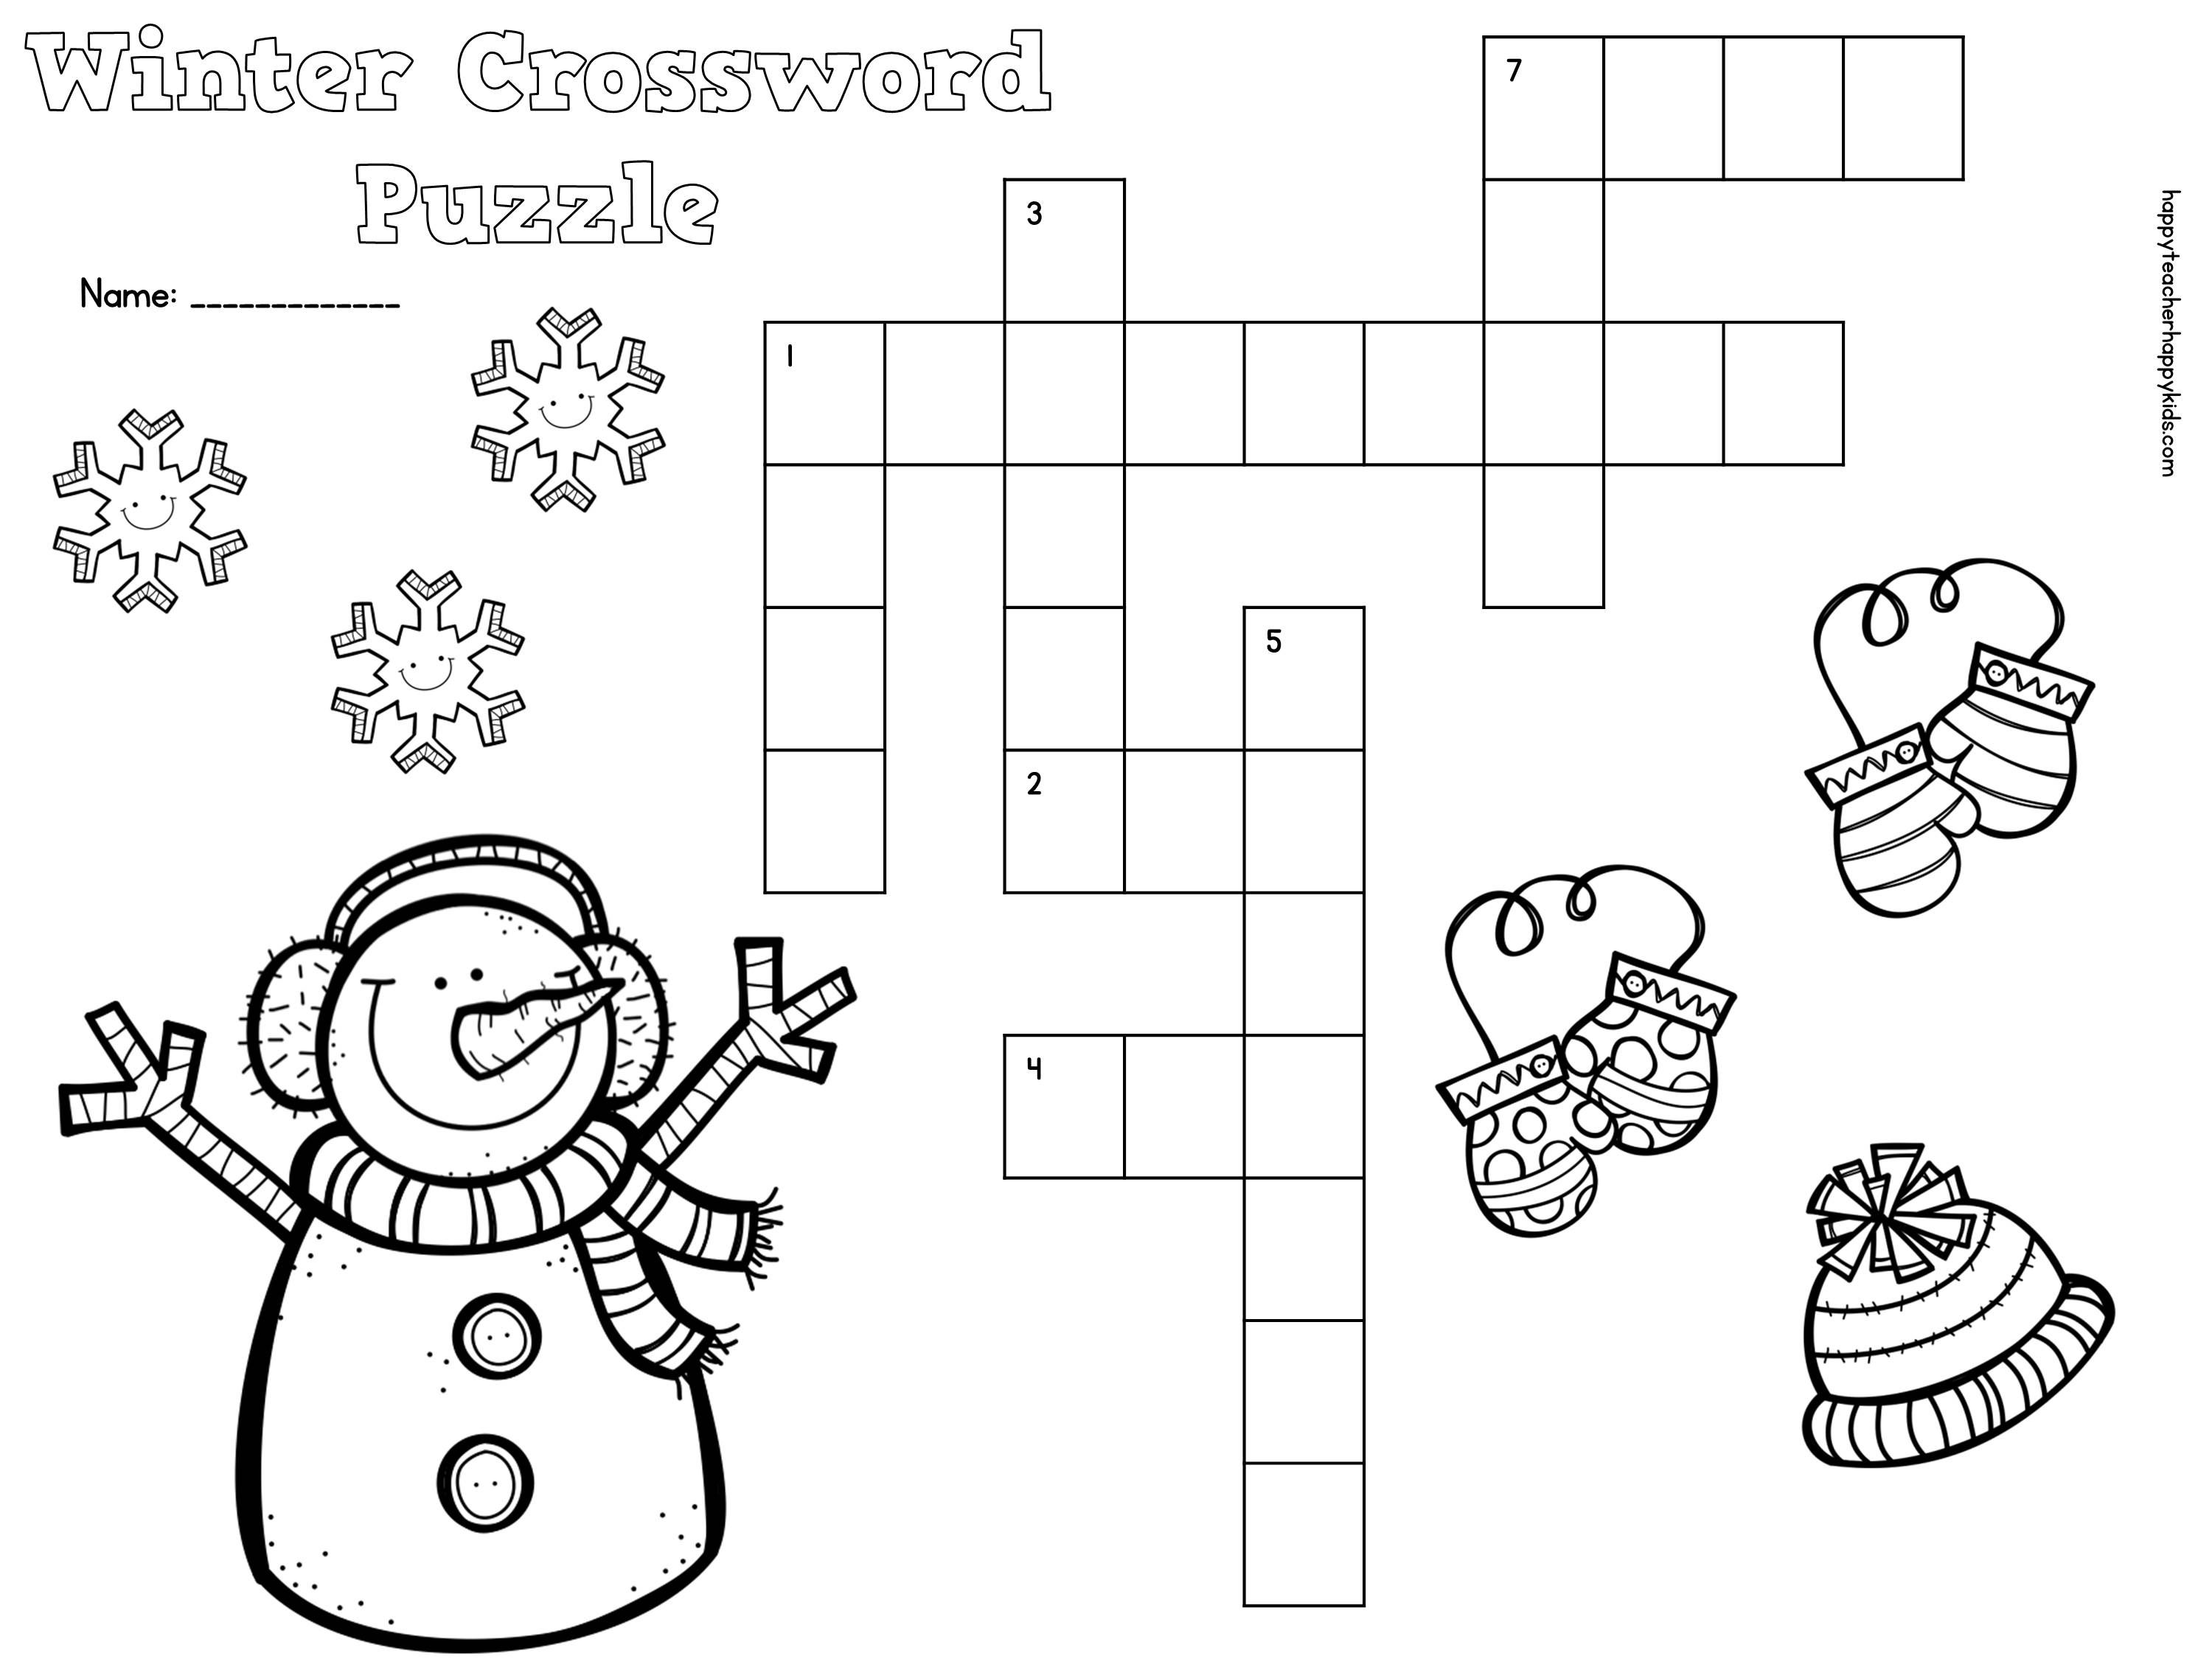 free winter crossword puzzle for primary students snow penguins mittens january ideas. Black Bedroom Furniture Sets. Home Design Ideas